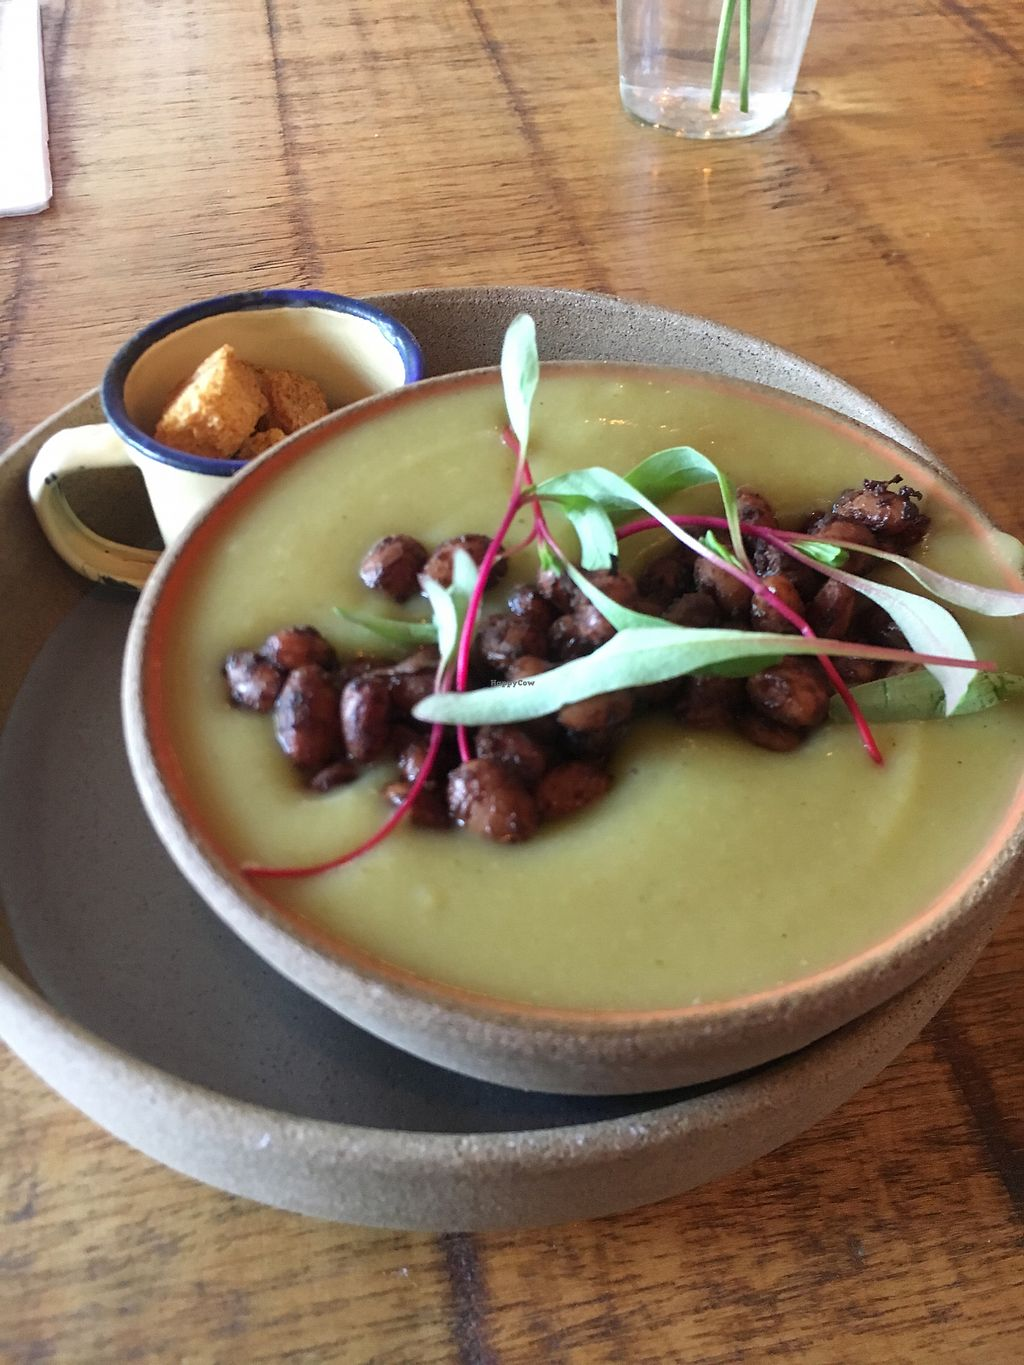 """Photo of Org Bistro  by <a href=""""/members/profile/reesebergeron"""">reesebergeron</a> <br/>amazing sweet potato soup  <br/> September 14, 2017  - <a href='/contact/abuse/image/53158/304325'>Report</a>"""